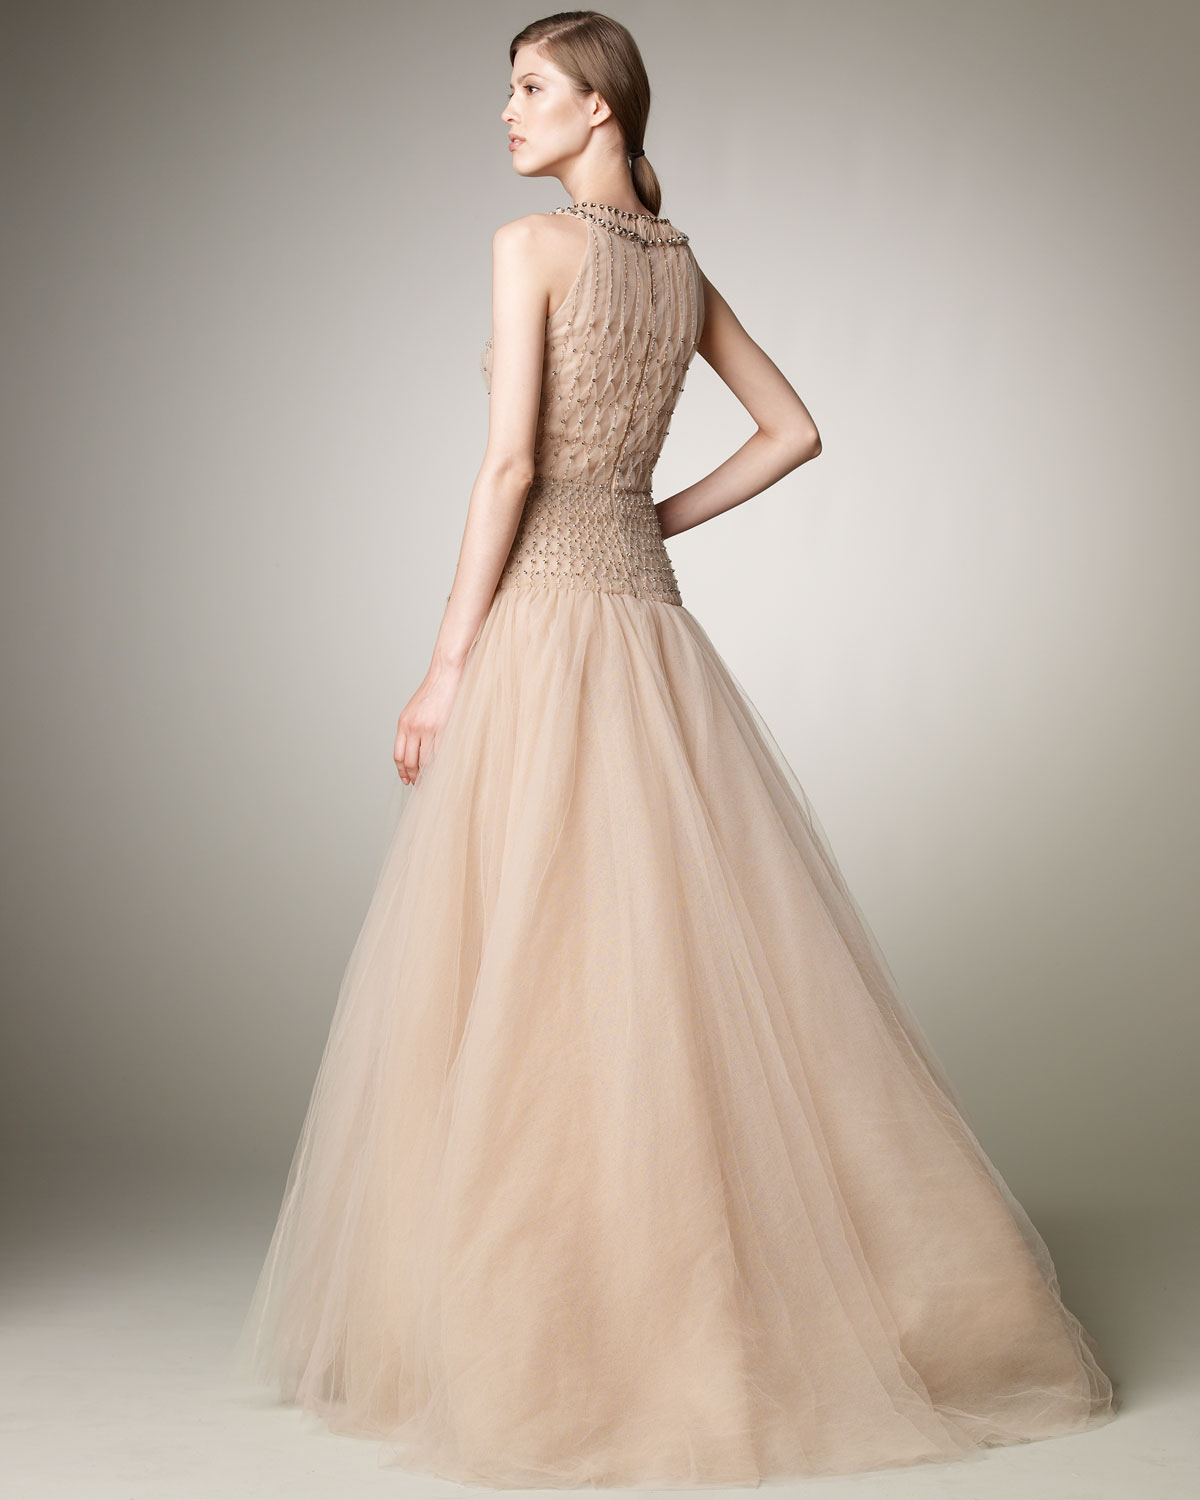 Valentino Evening Gowns | Dress images